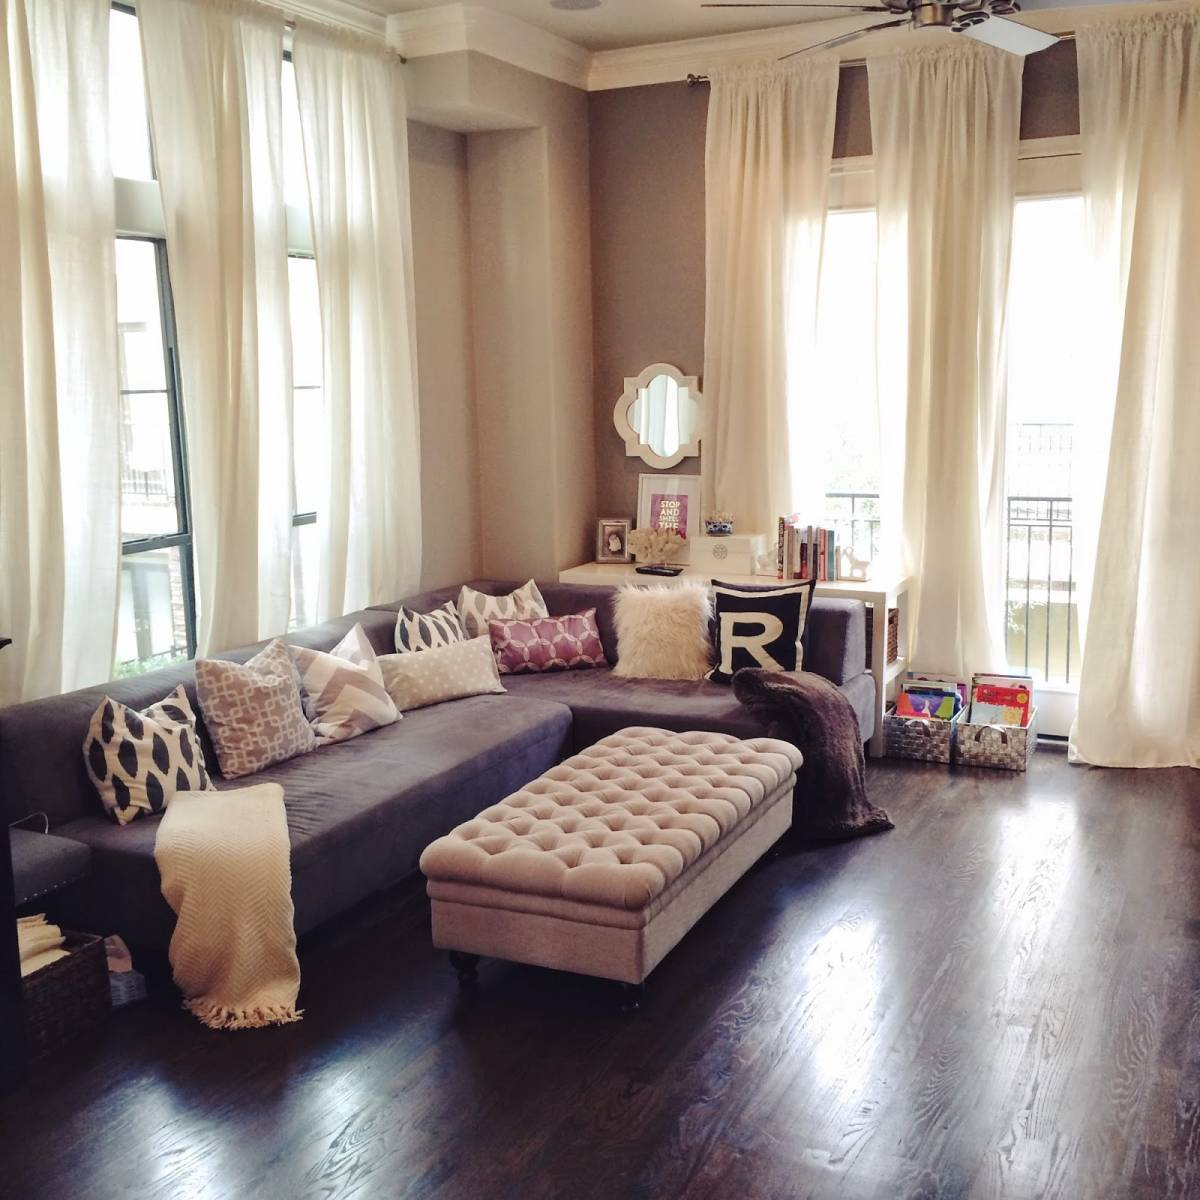 25 Cool Living Room Curtain Ideas For Your Farmhouse ... on Living Room Curtains Ideas  id=93476